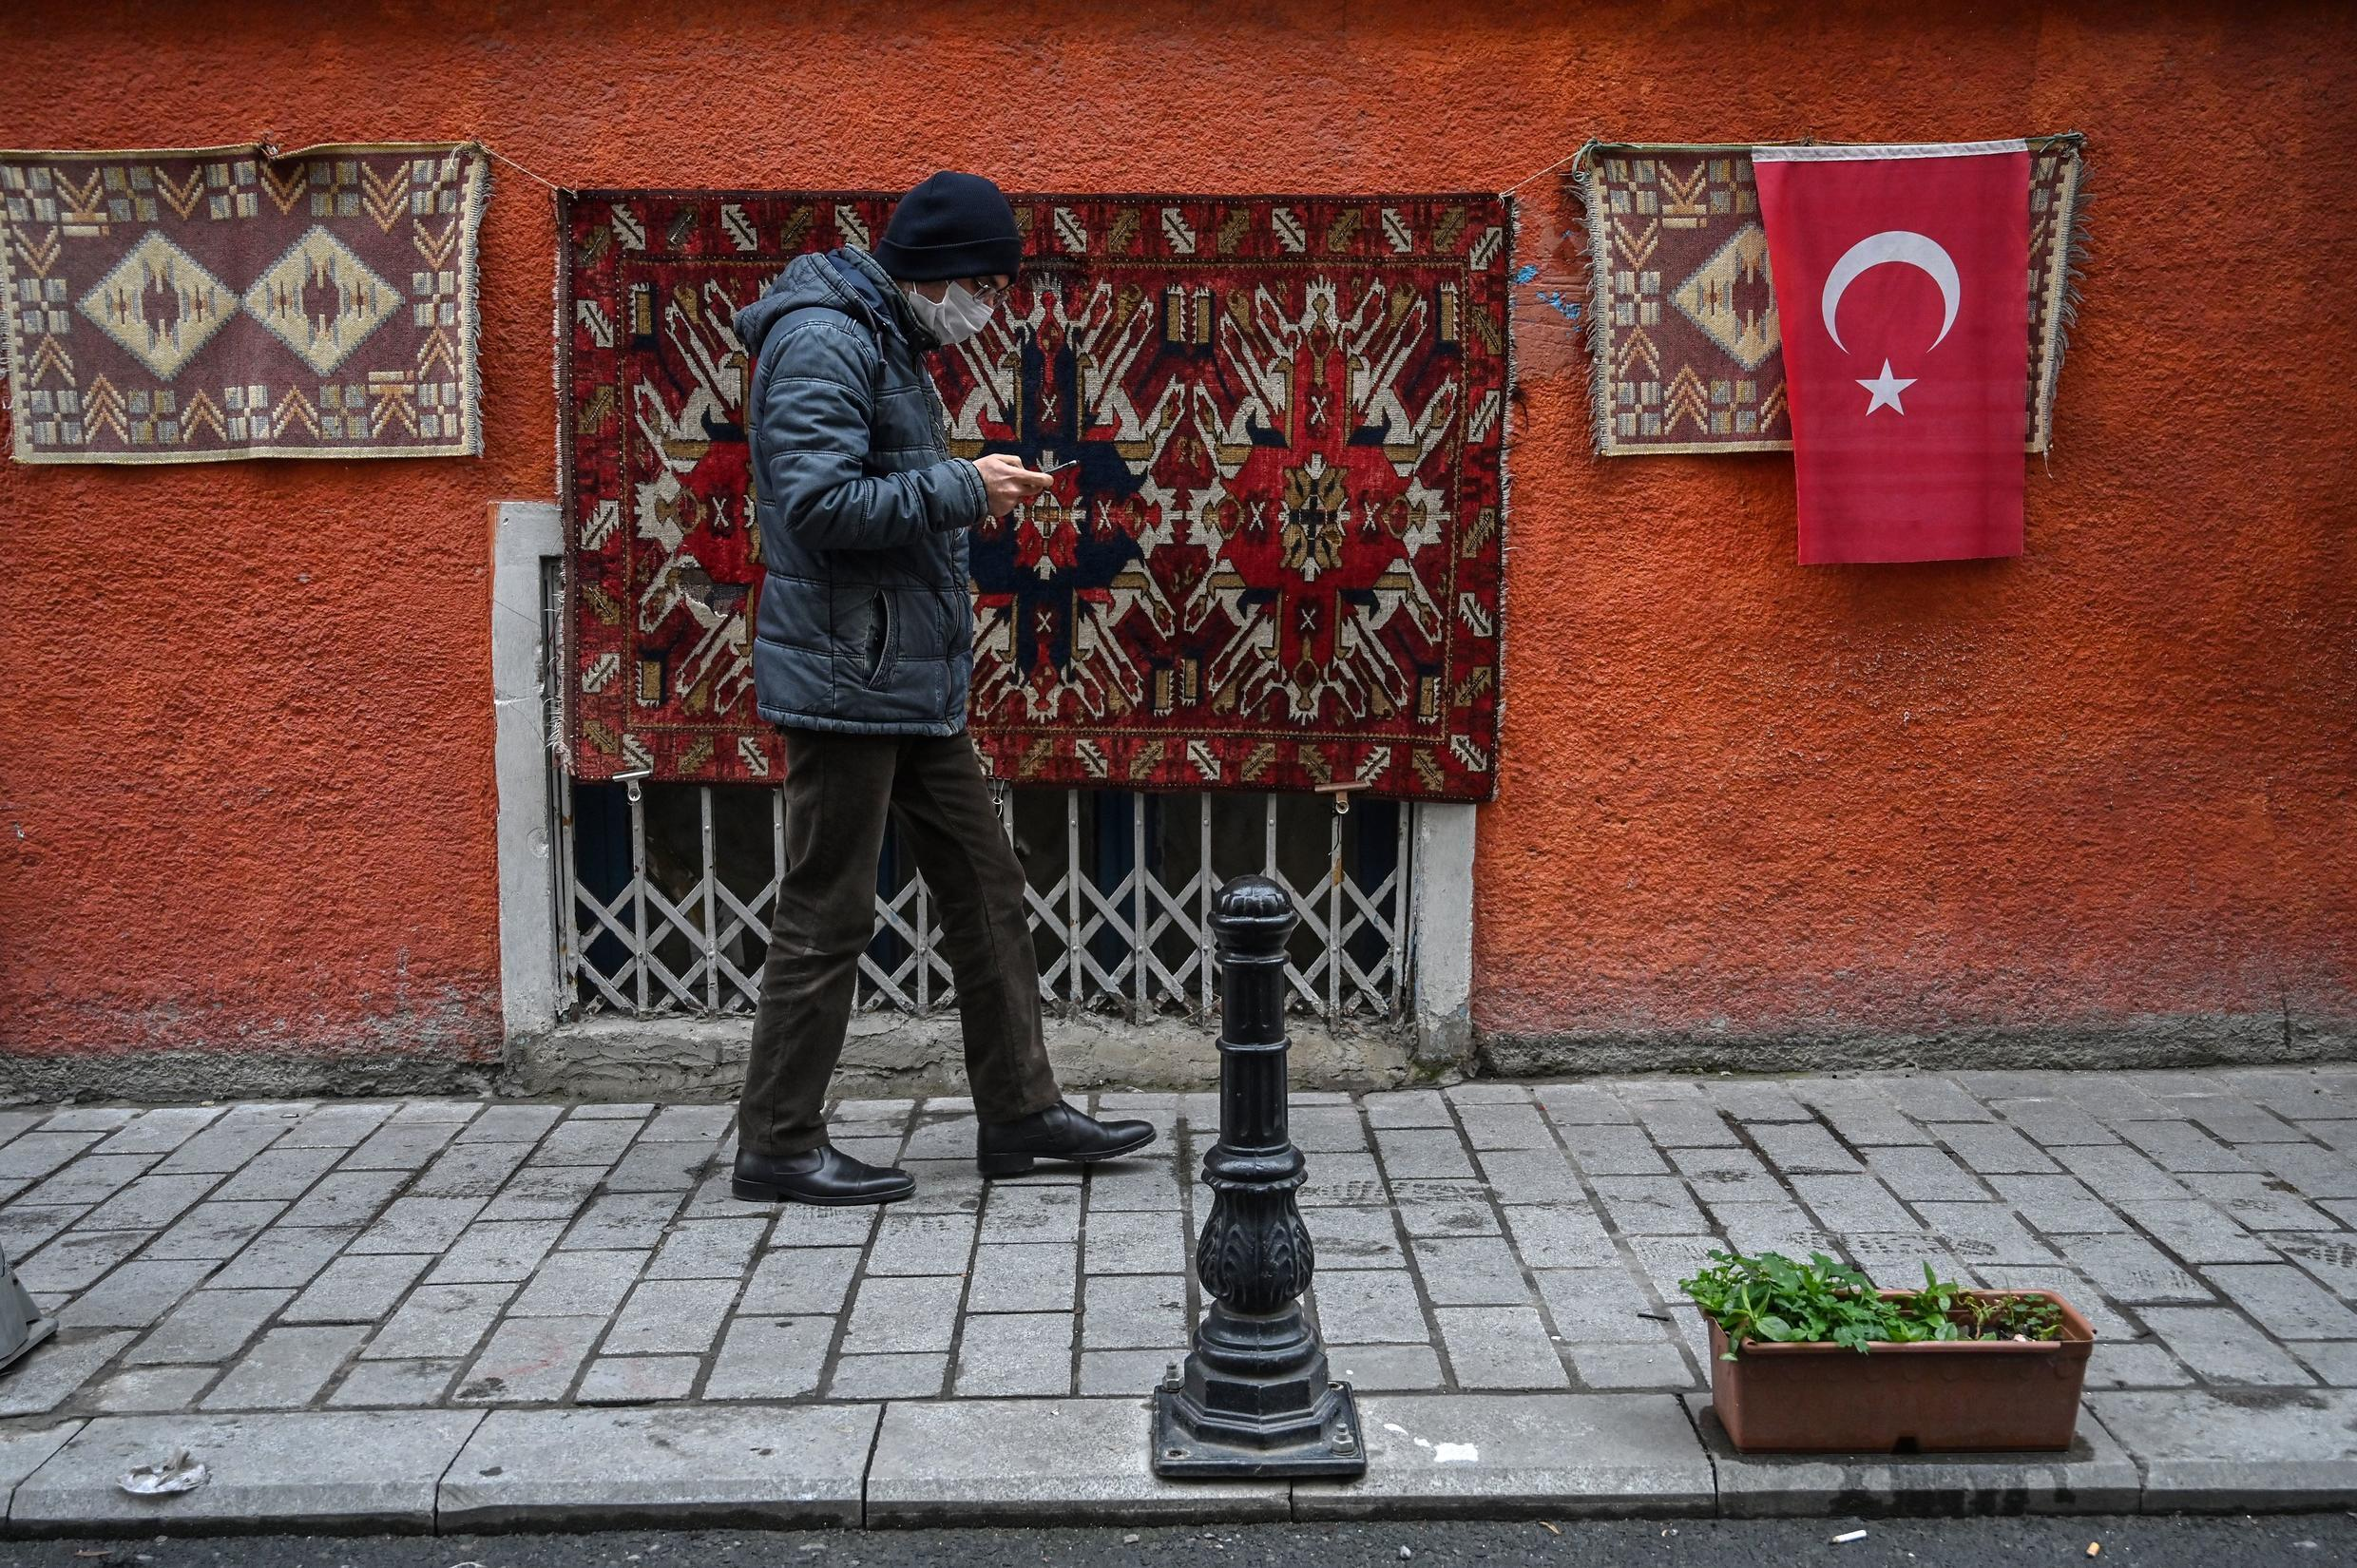 Turkey is among the world's worst countries for jailing journalists, ranked 154 out of 180 countries ranked by media watchdog Reporters Without Borders